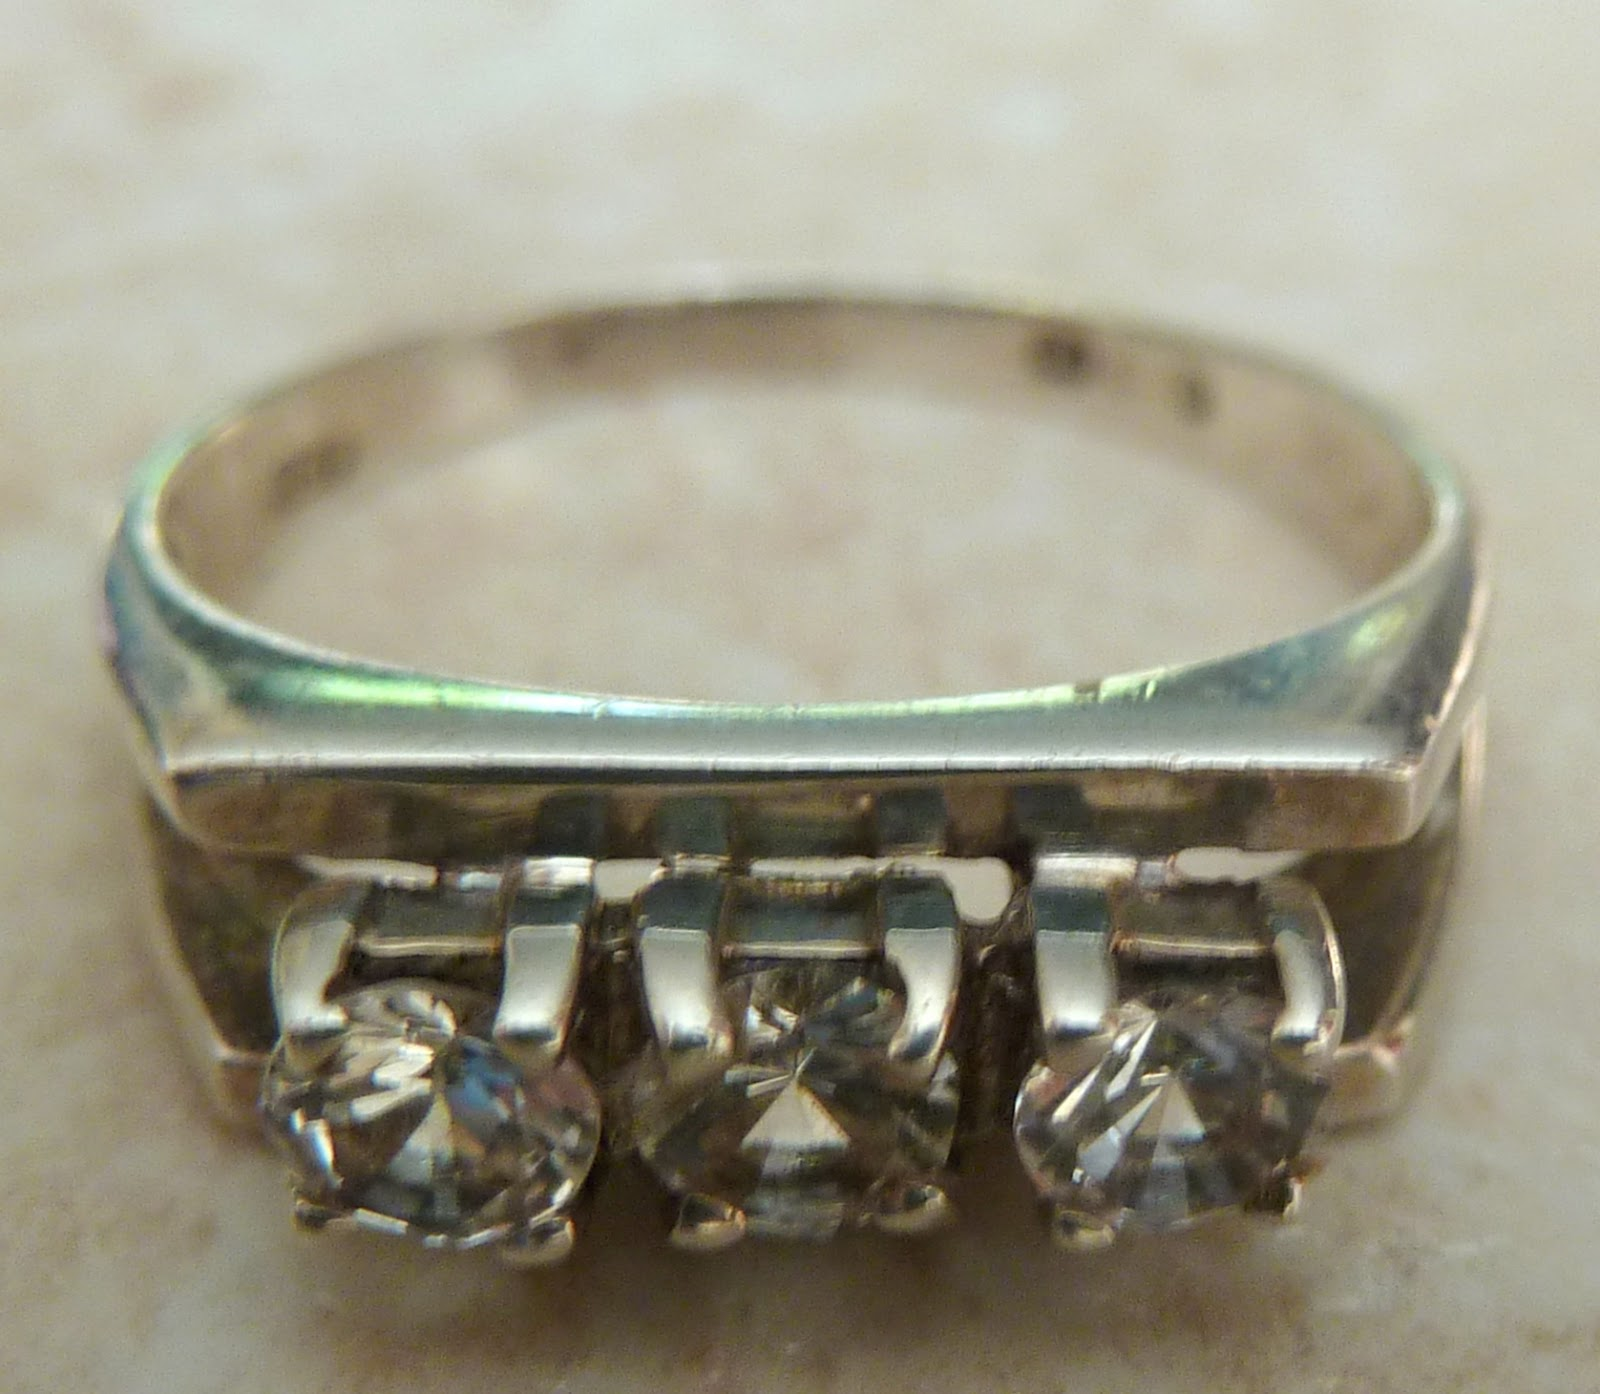 http://www.kcavintagegems.uk/vintage-sterling-silver-and-zirconia-modernist-style-ring-360-p.asp